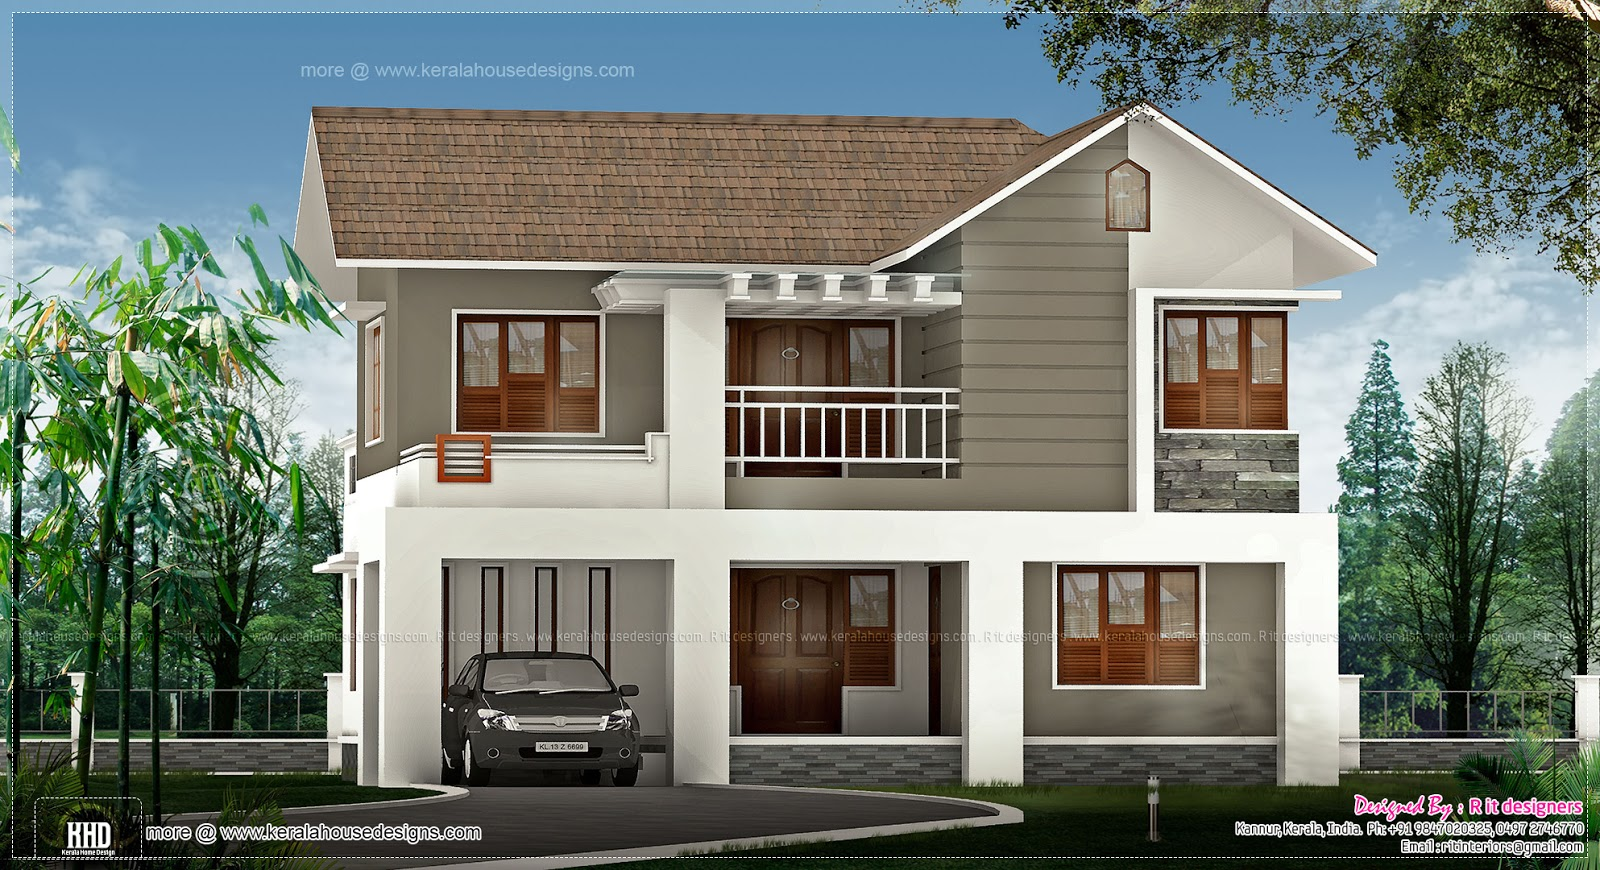 1829 sq ft home design in kannur kerala kerala home for House design and estimate cost